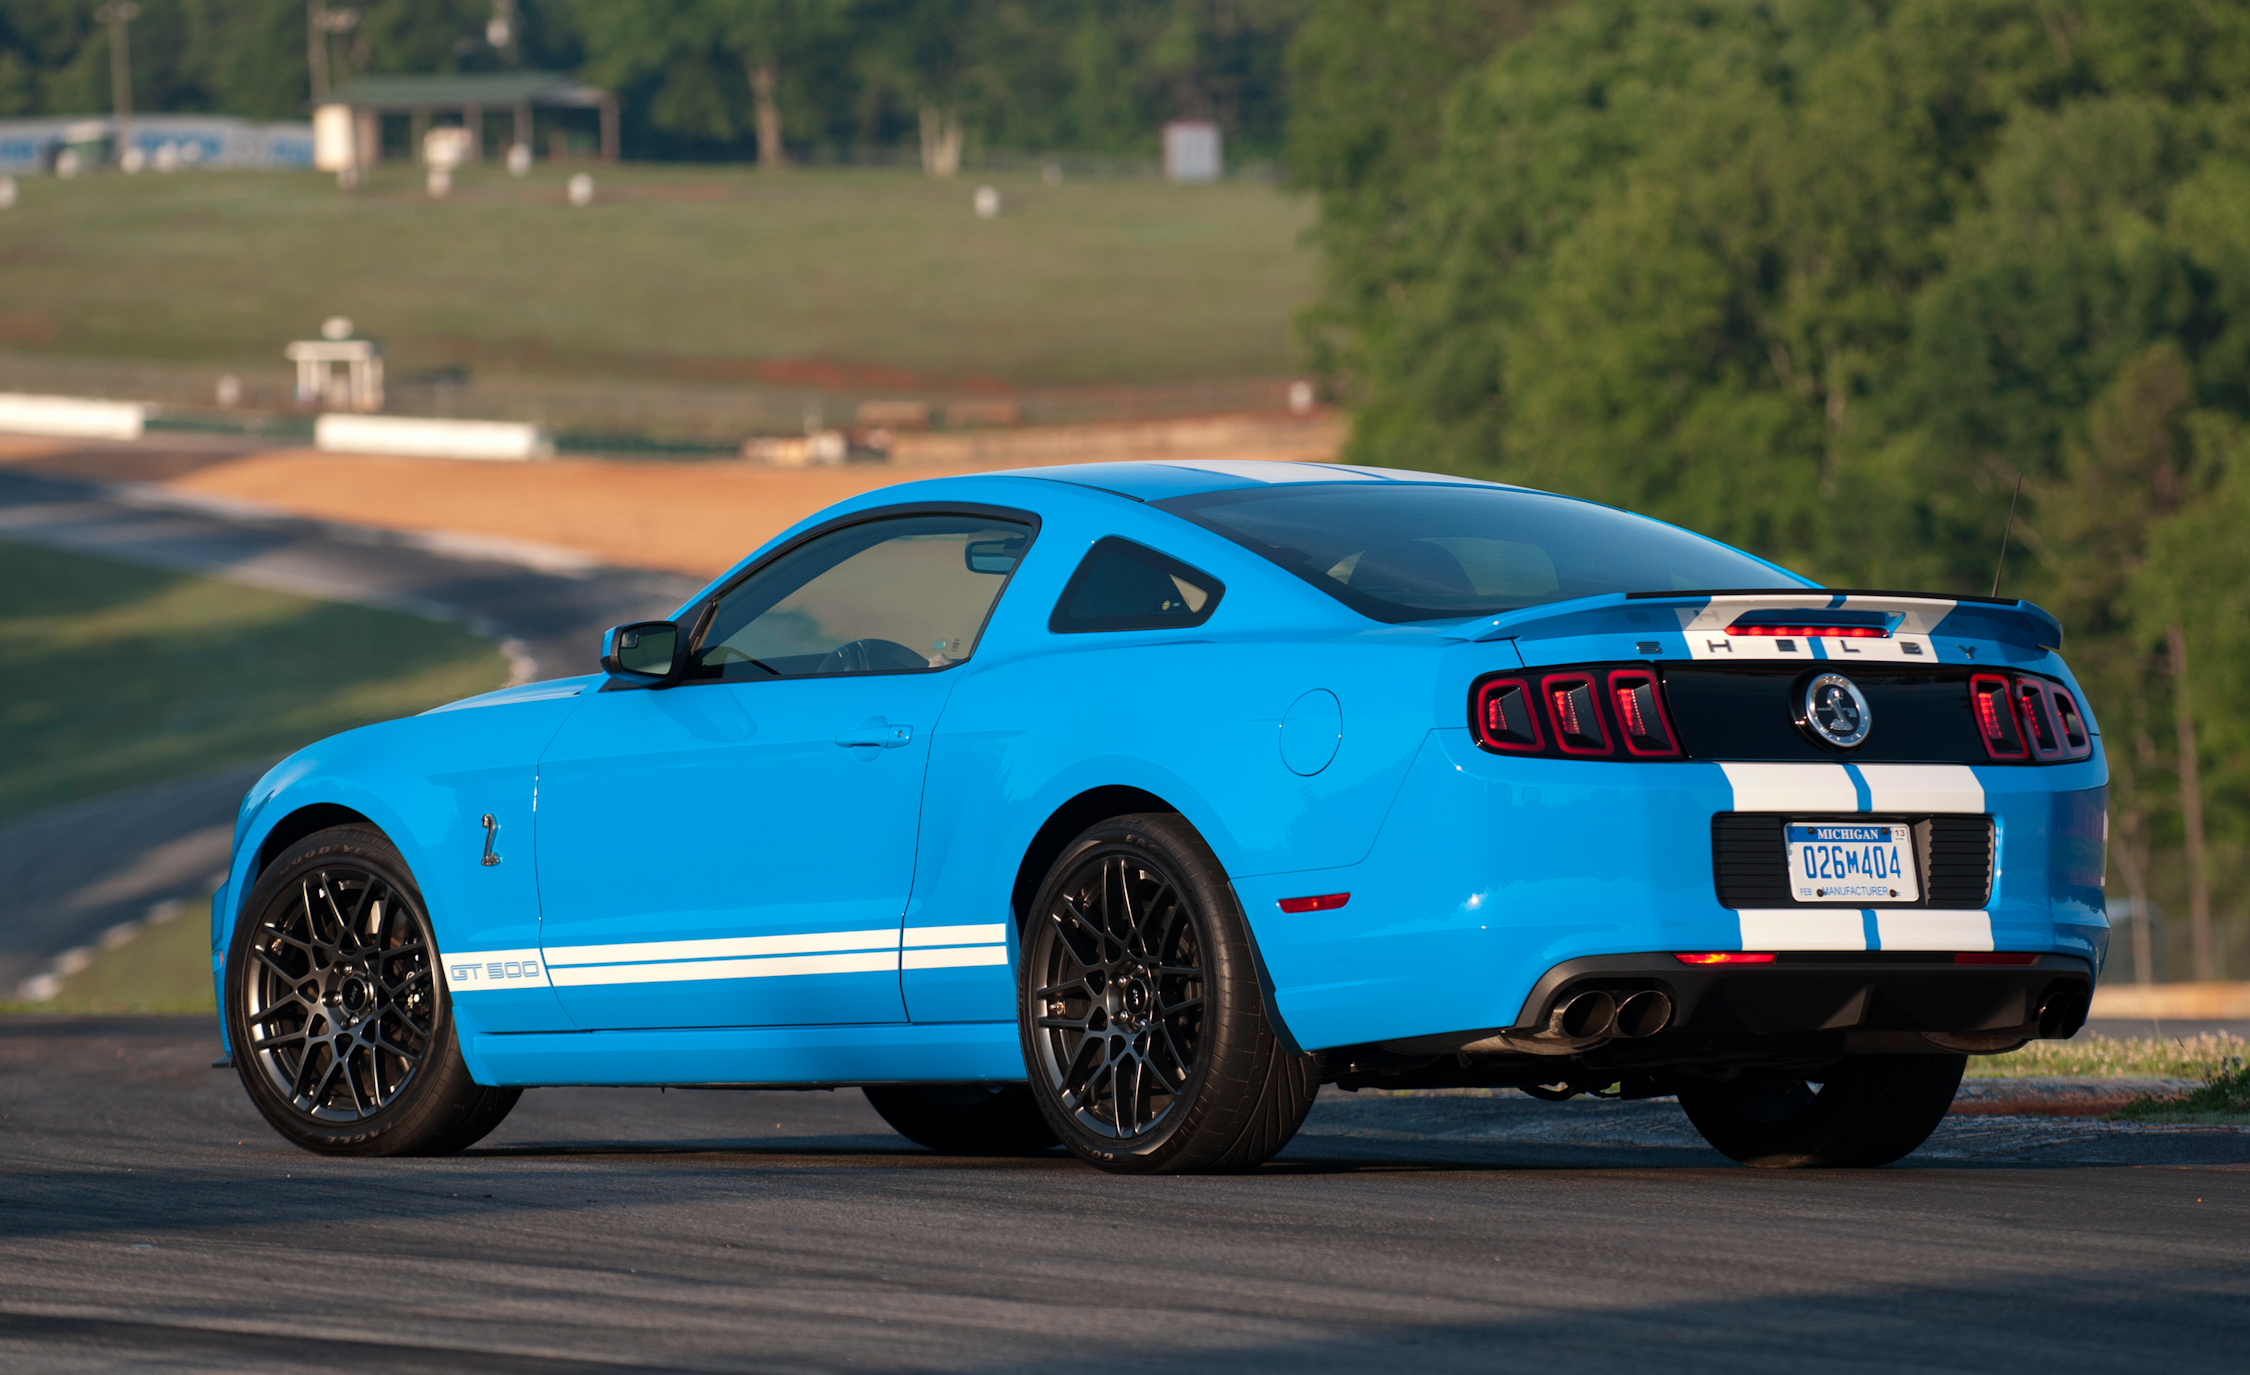 2013 Ford Mustang Shelby GT500 Blue Exterior Side And Rear (View 32 of 47)